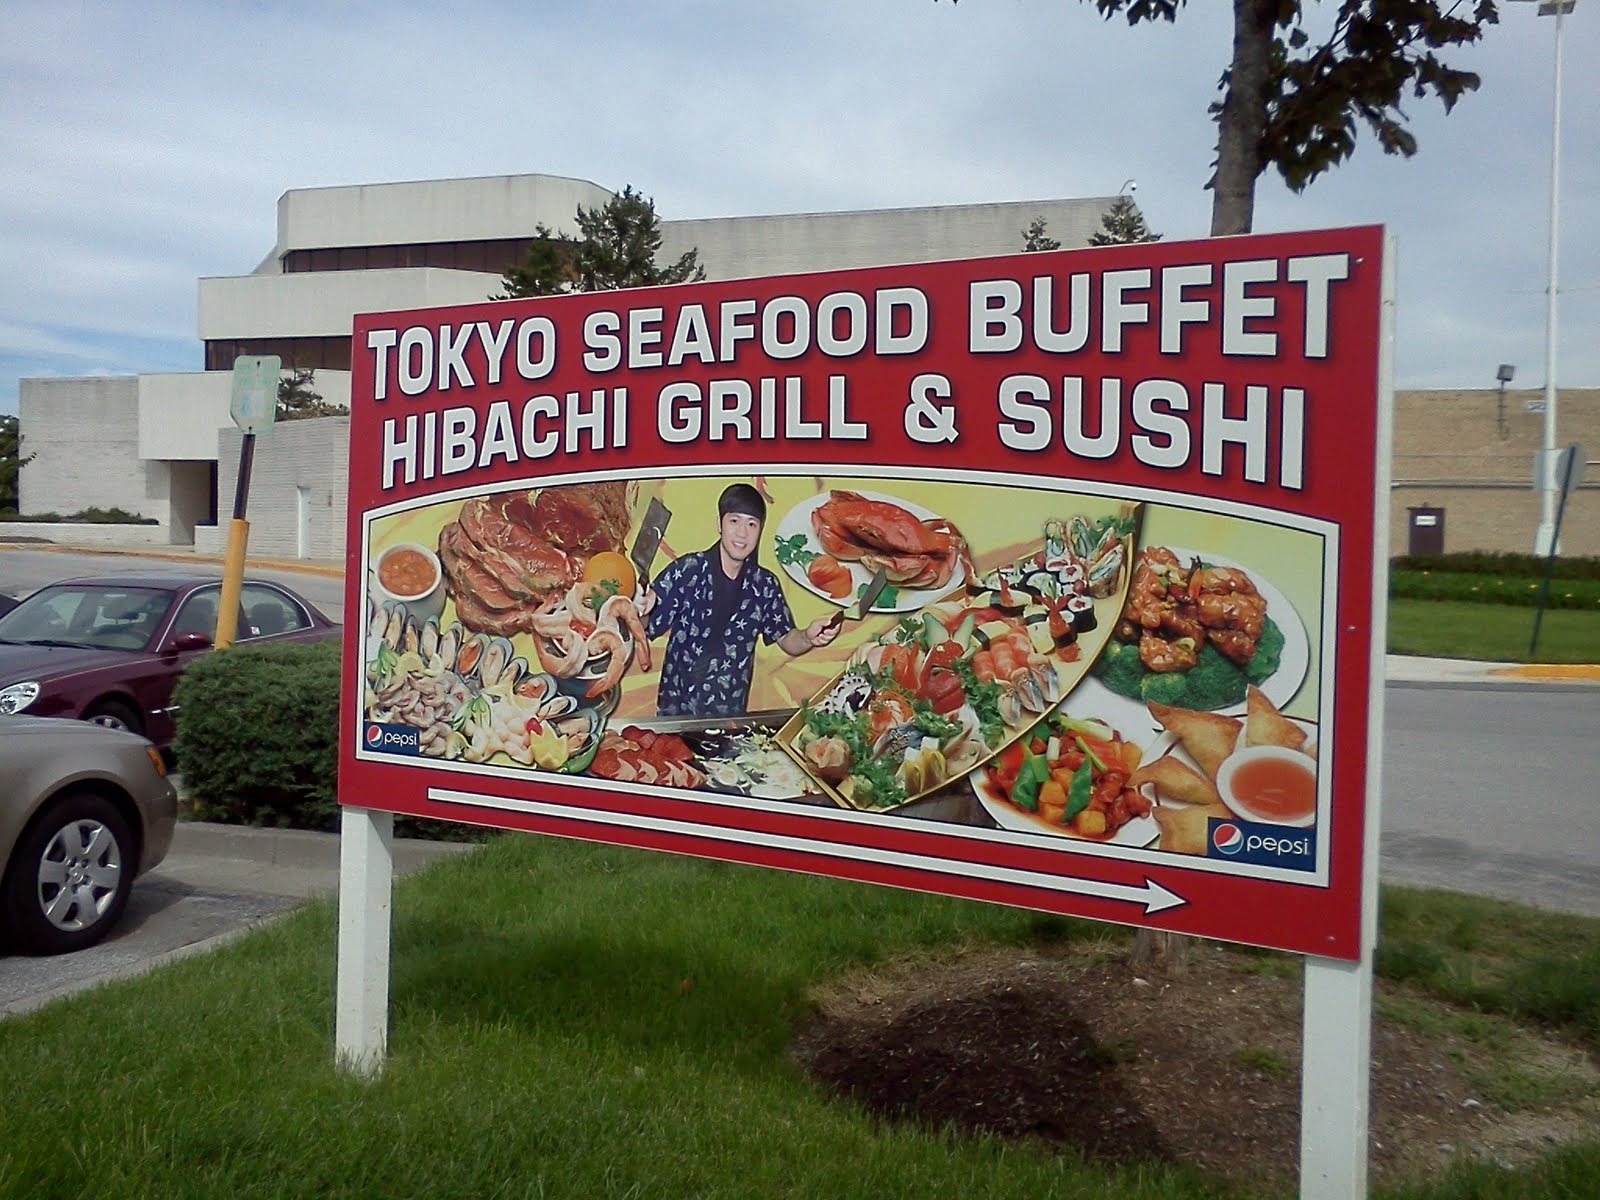 Accelerated Decrepitude: Tokyo Seafood Buffet is Ichiban! - photo#35